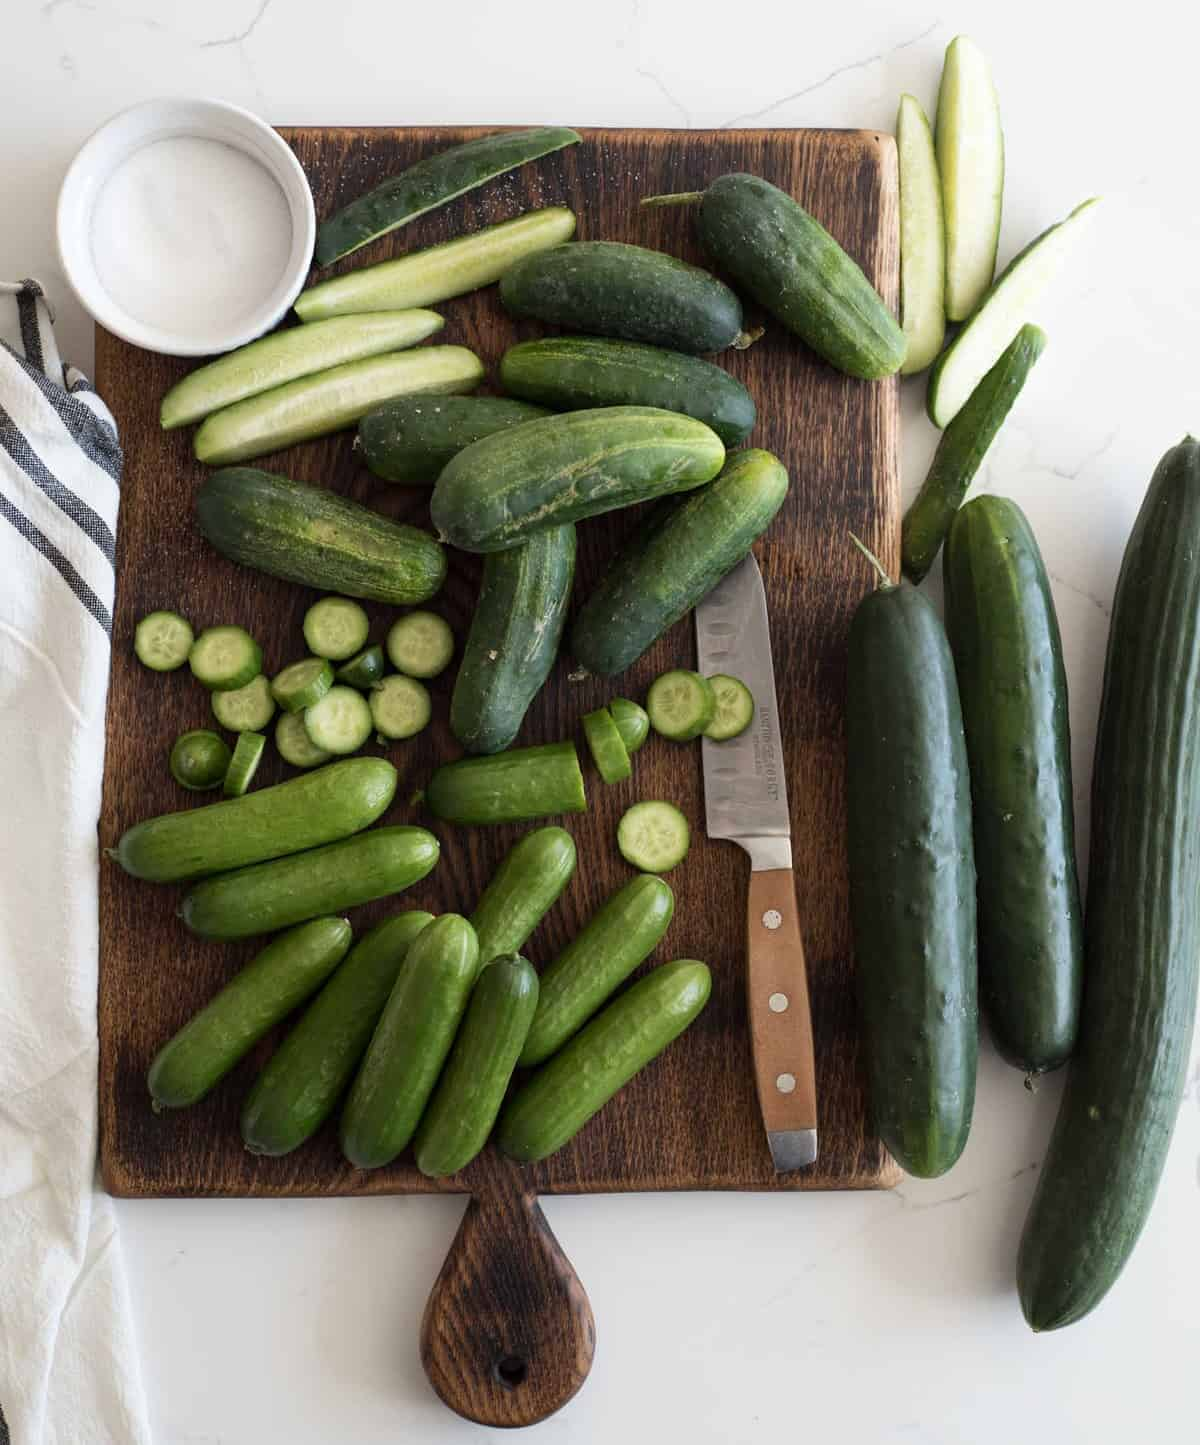 Sweet and spicy cucumbers and vinegar make the most delicious refrigeration pickles that only take about 5 minutes to make.